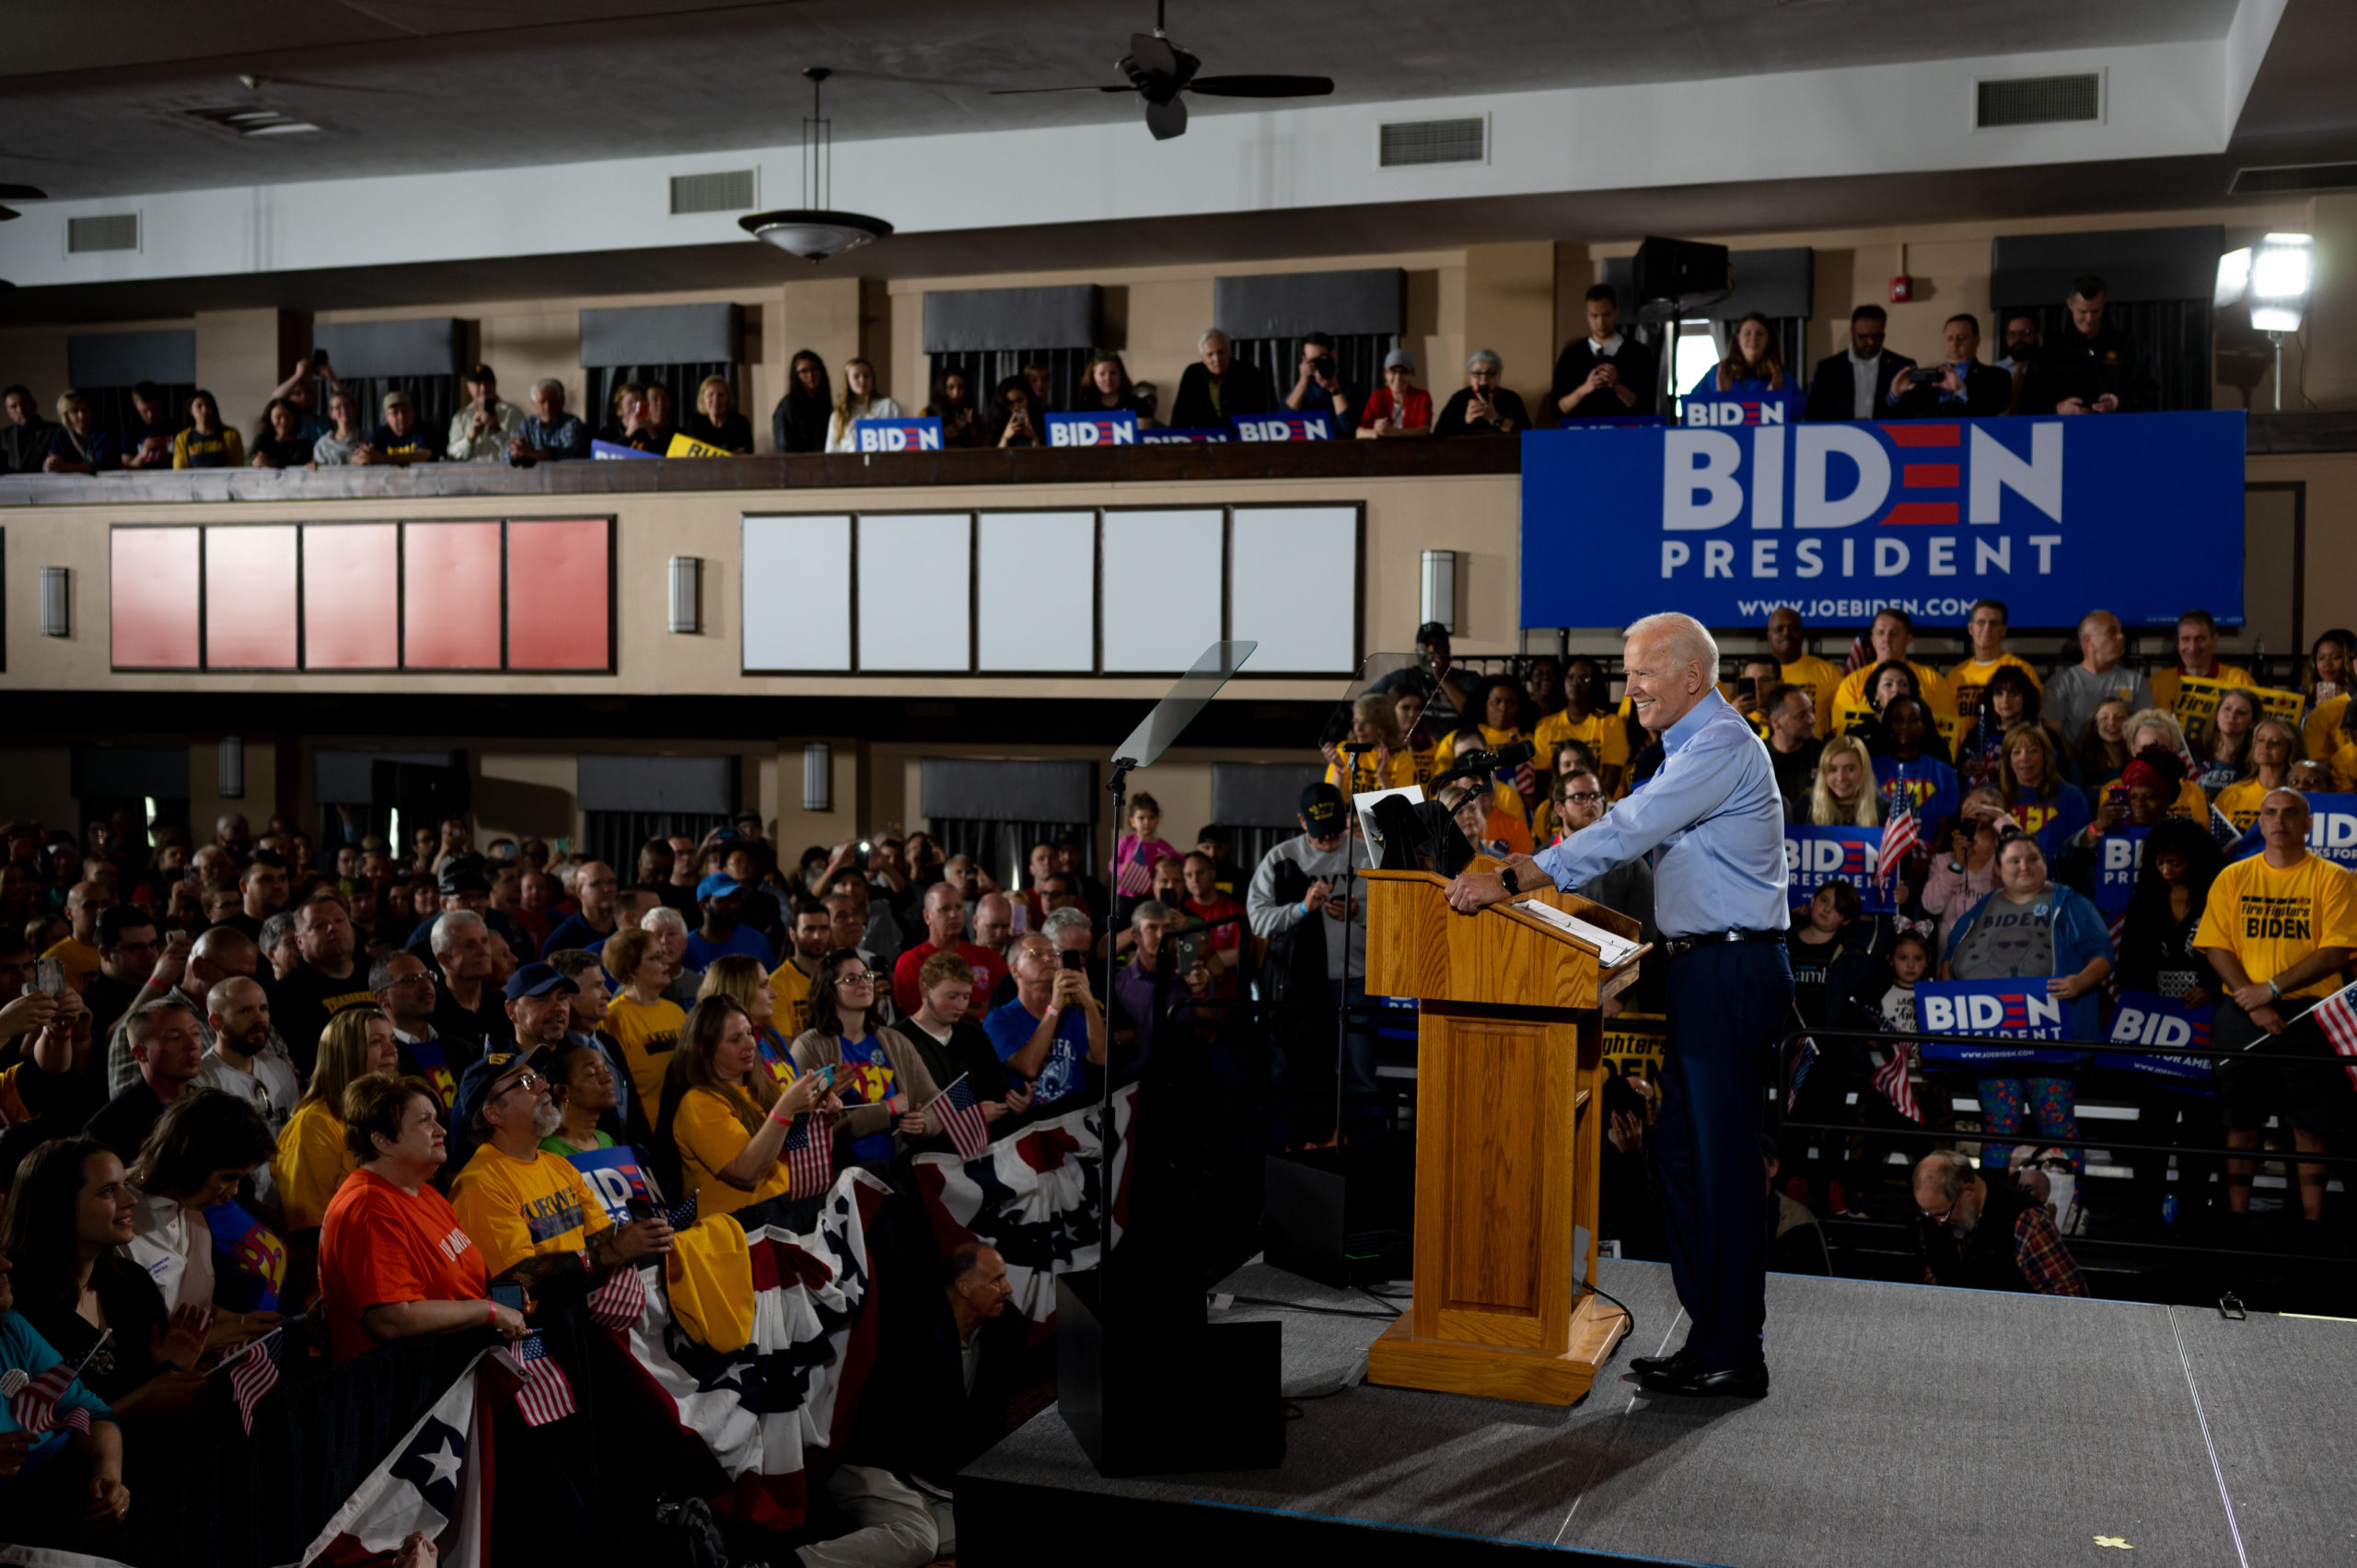 Former Vice President Joe Biden speaks at a campaign rally at Teamsters Local 249 Union Hall on April 29, 2019 in Pittsburgh, Pennsylvania. (Jeff Swensen/Getty Images)